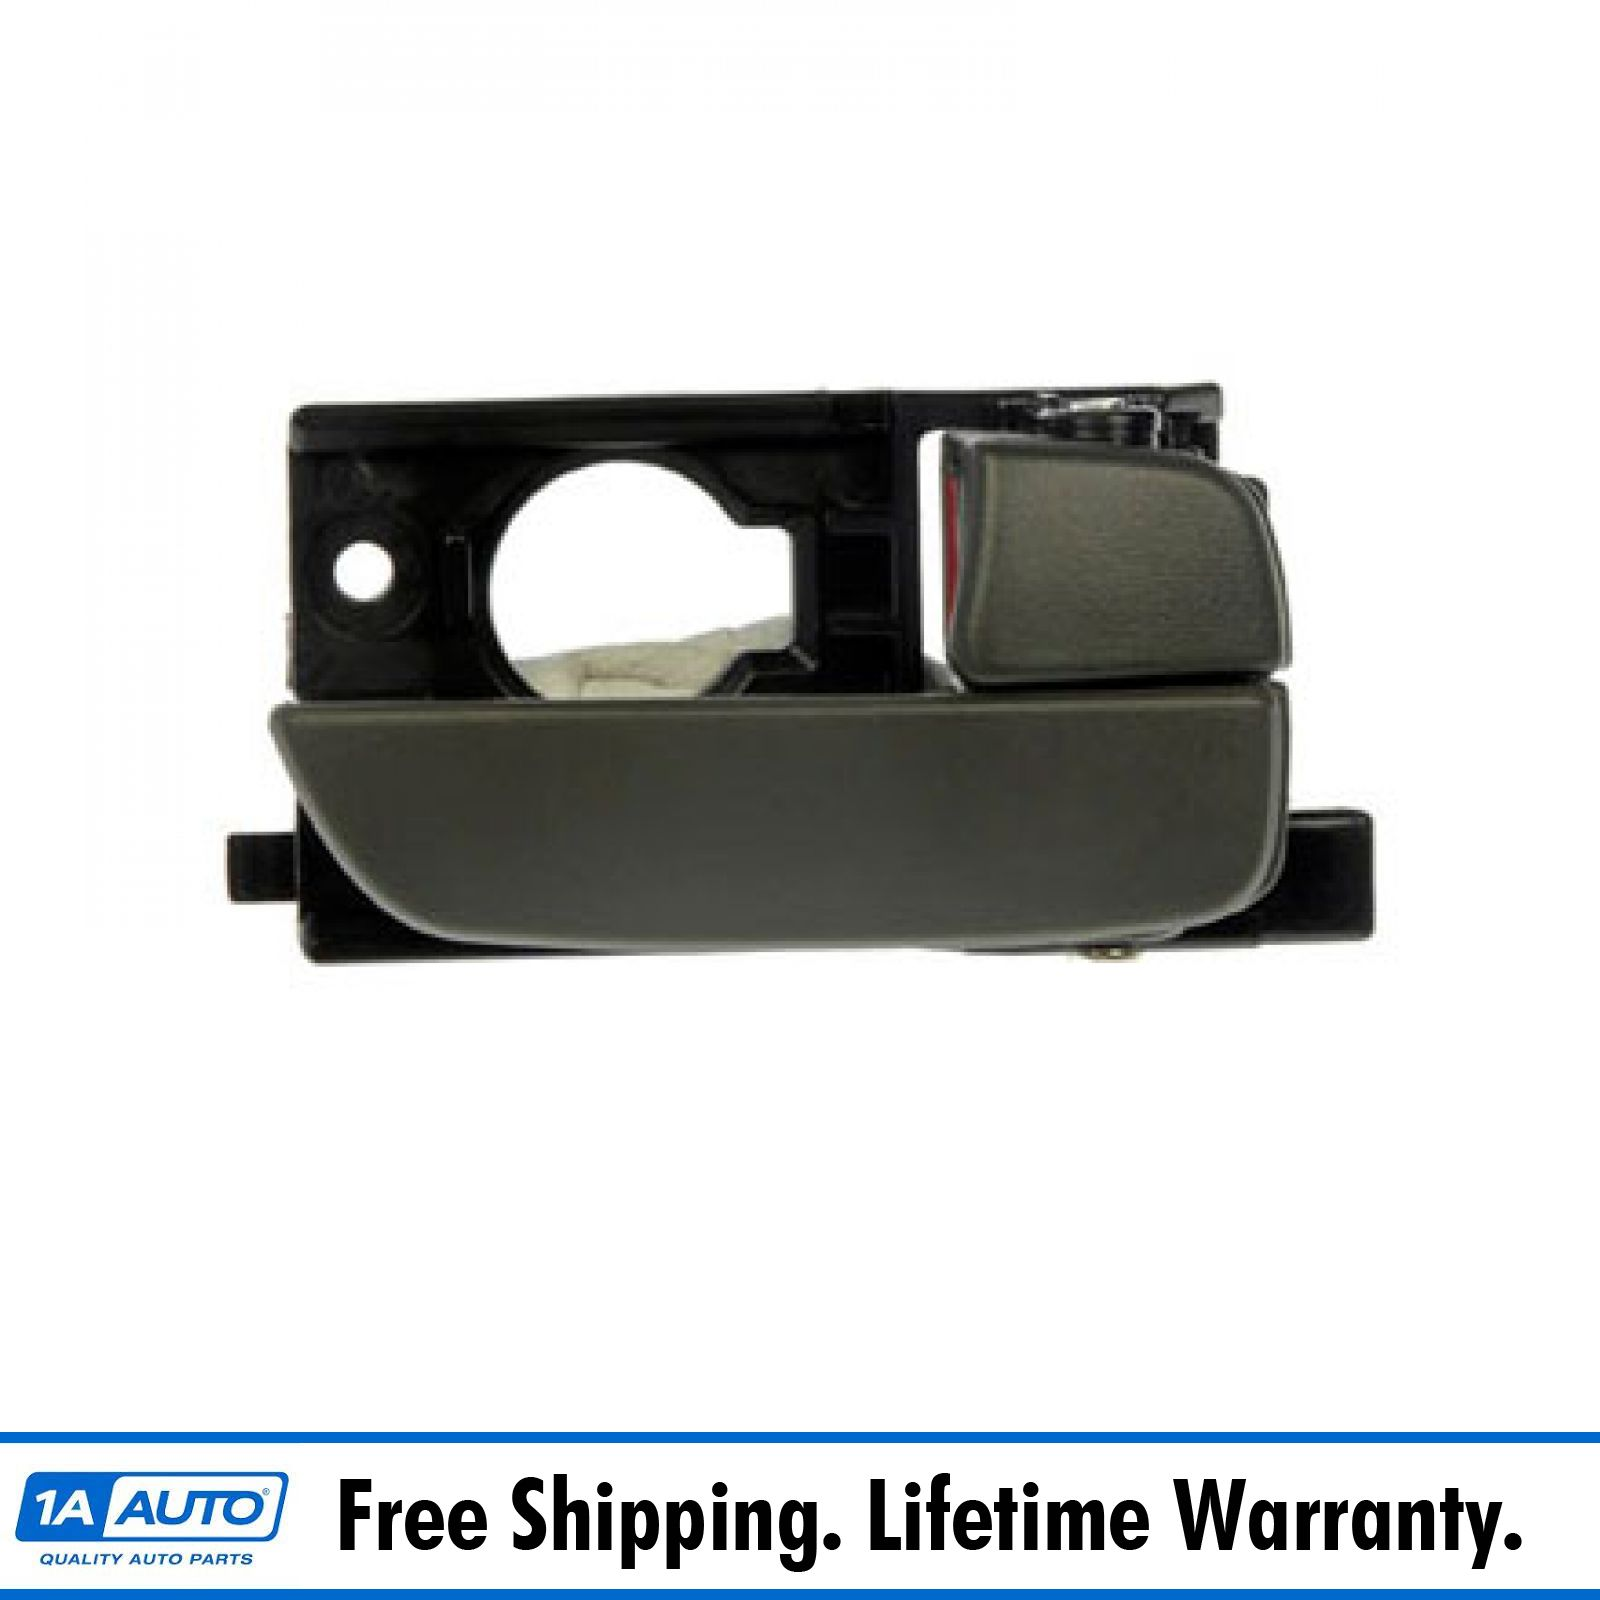 Front Driver Side Left  Outside Door Handle For Hyundai Accent 2006-11 2009 2007